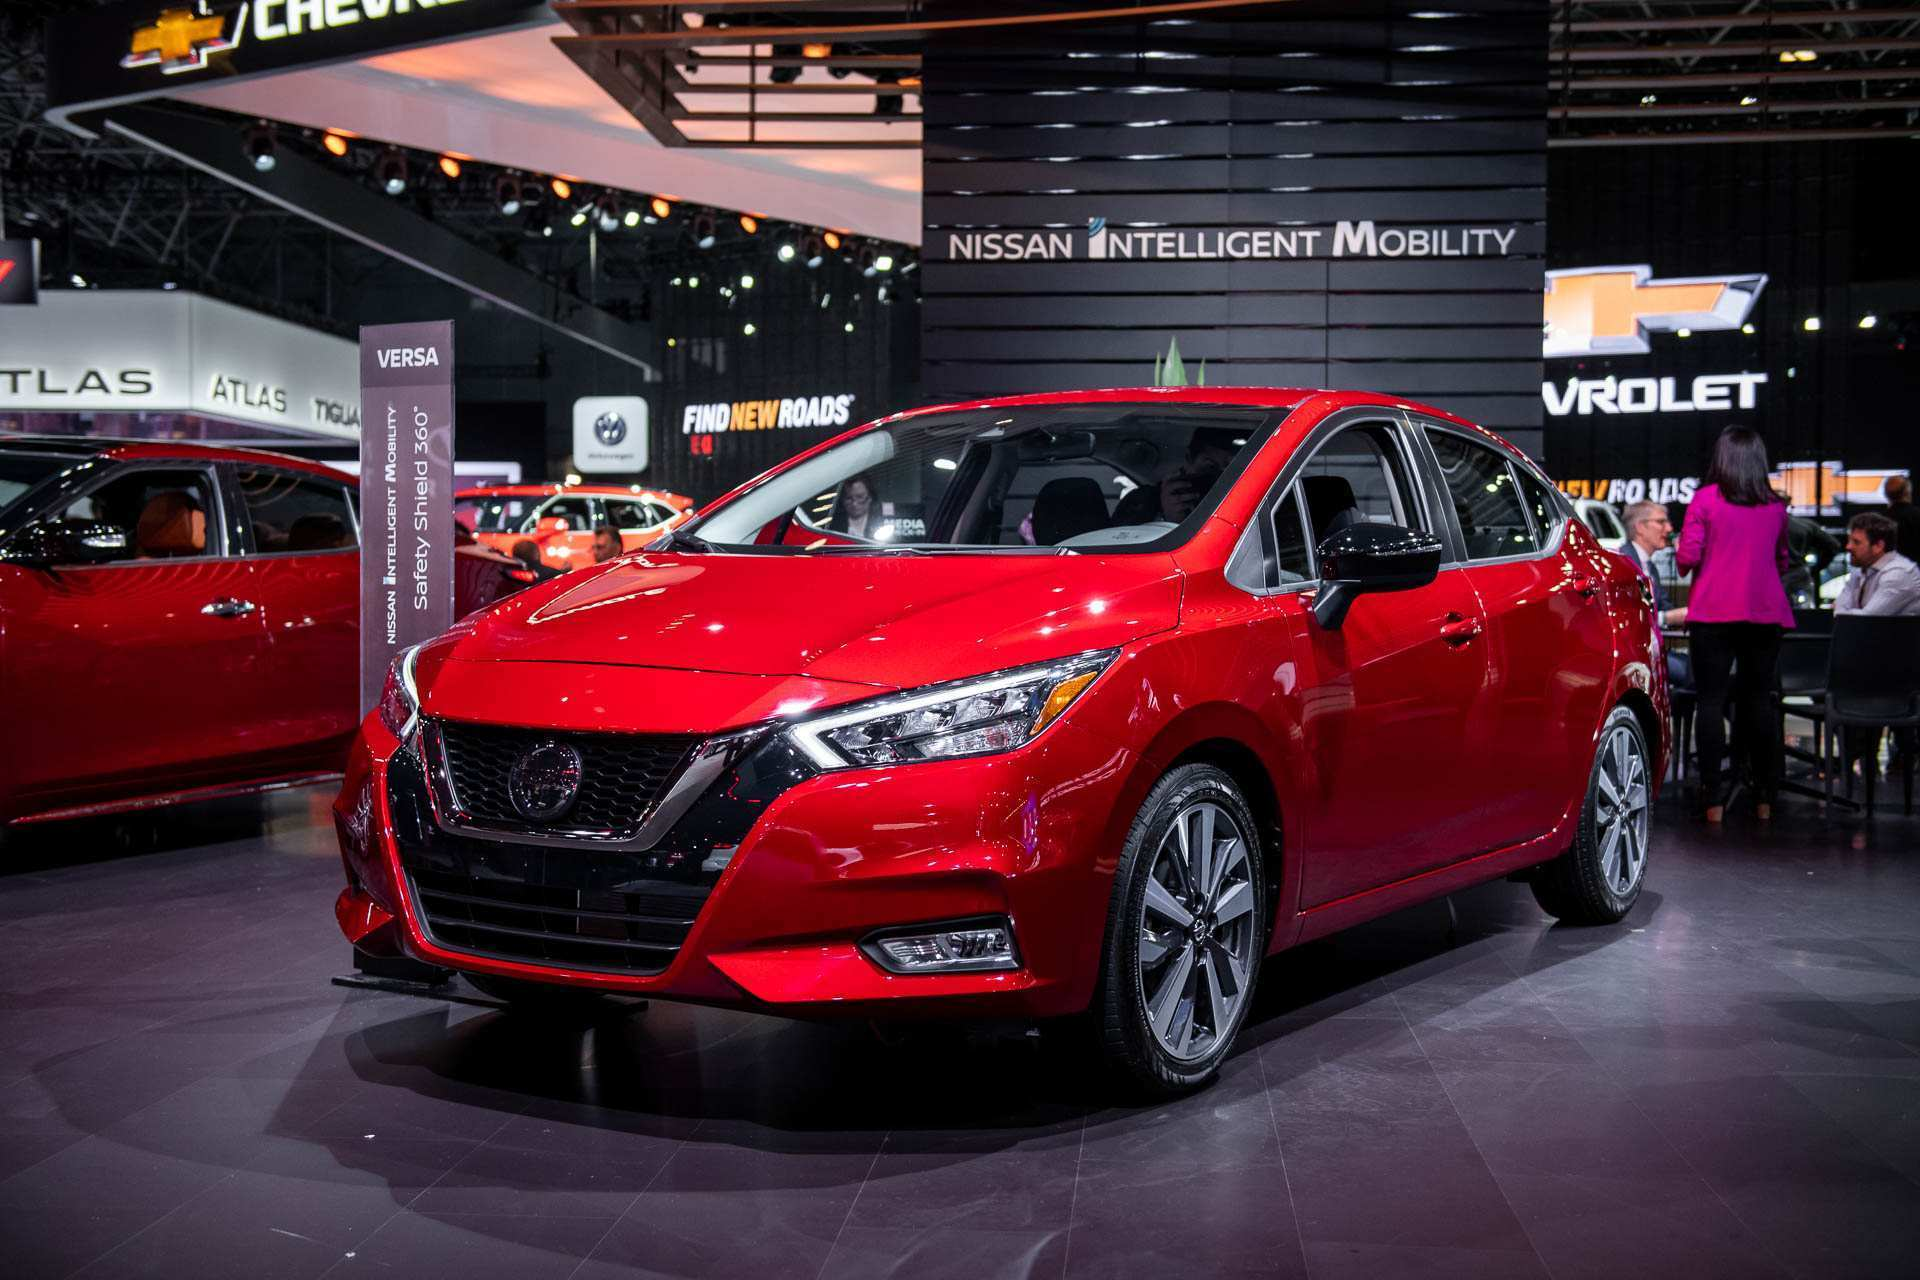 96 The 2020 Nissan Versa Interior